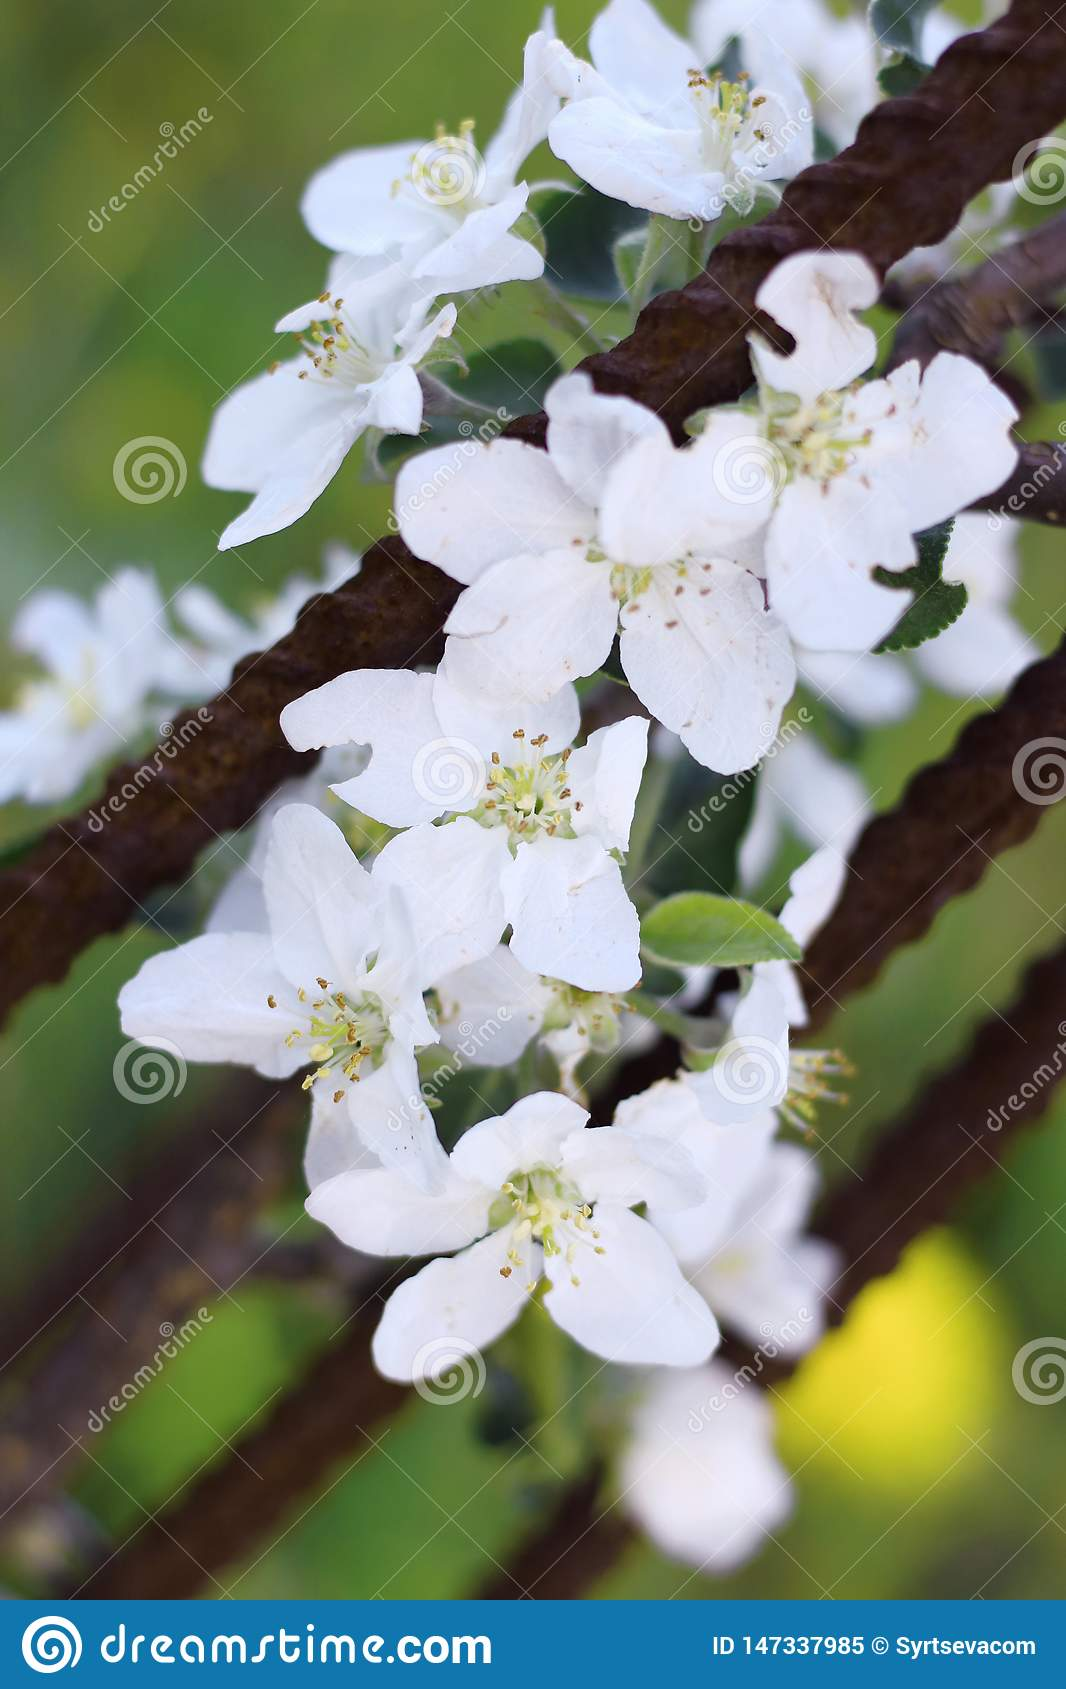 Blooming Apple flowers on a branch close-up